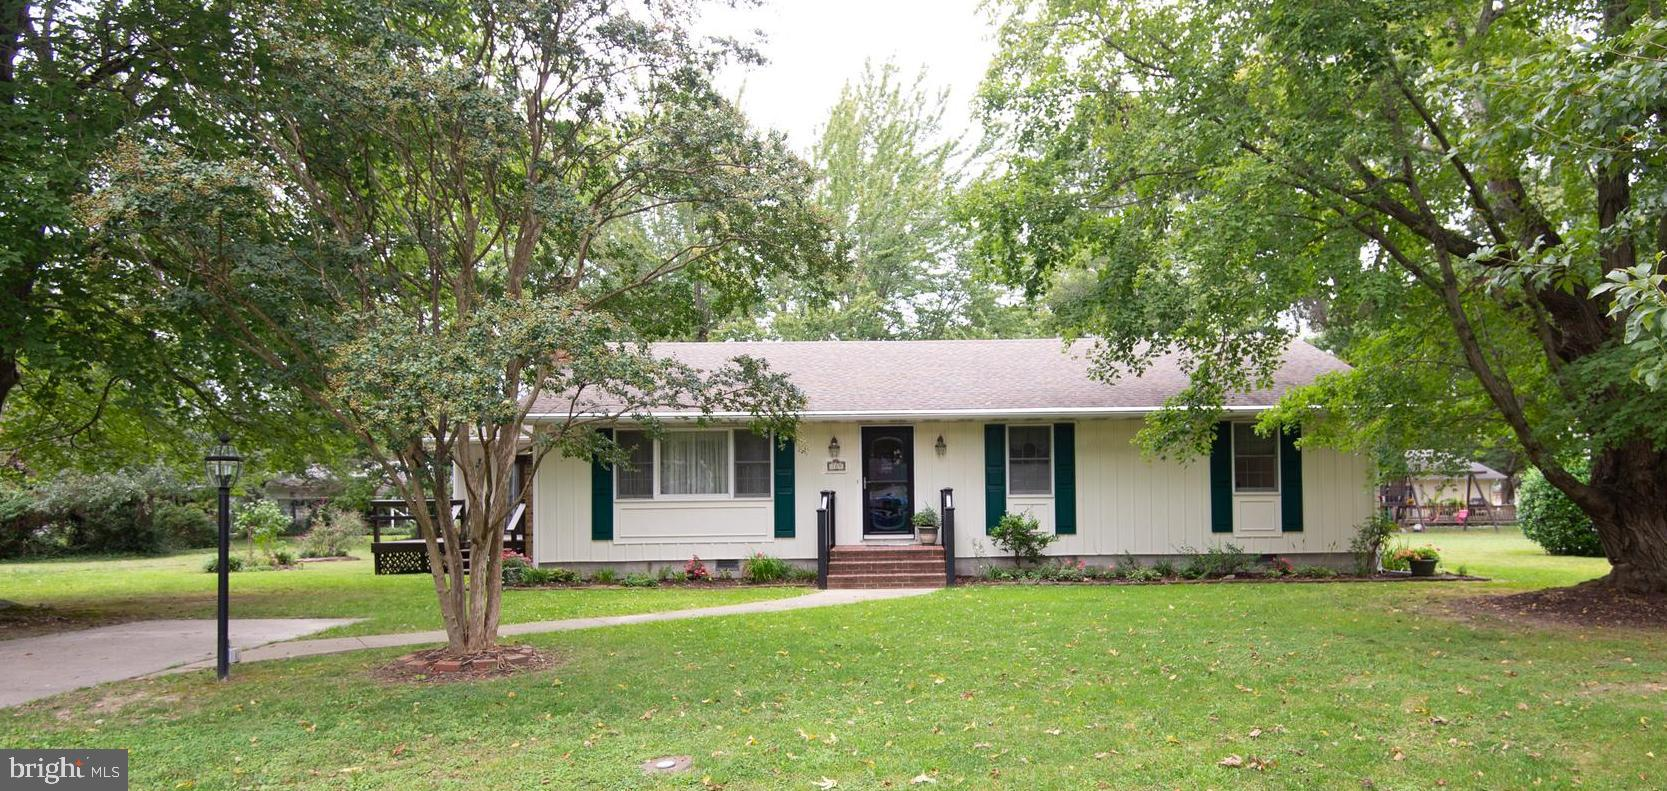 Attention has been paid to every detail in this 3 bedroom, 2 bath home. Cozy living room with fireplace opens to the kitchen and dining room. Granite counter tops. Glass enclosed porch.